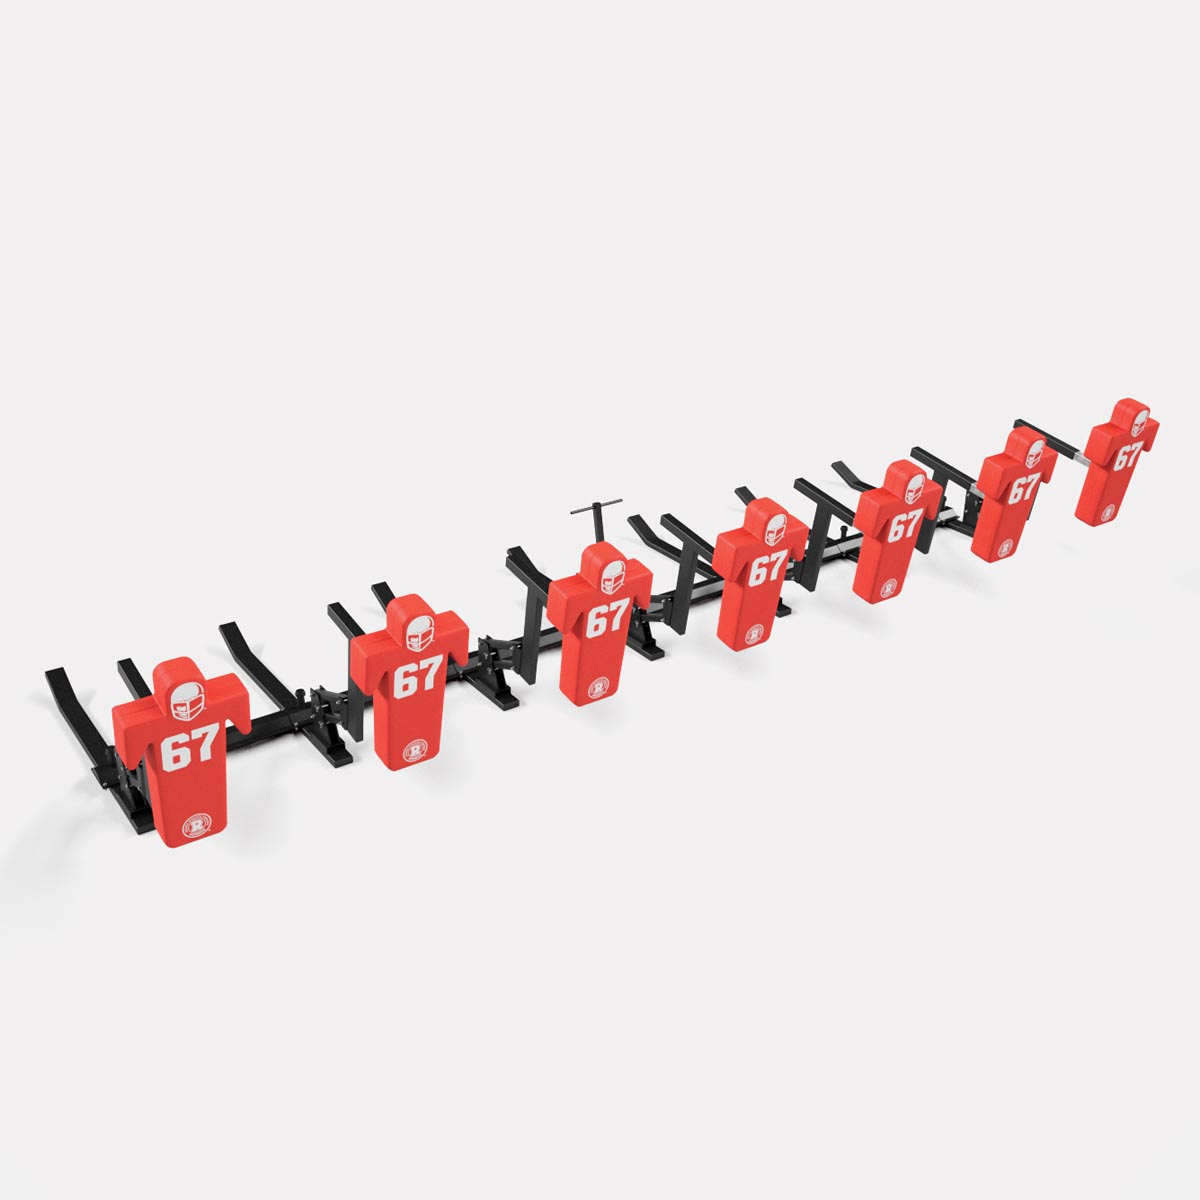 7 man football sled - double action pro